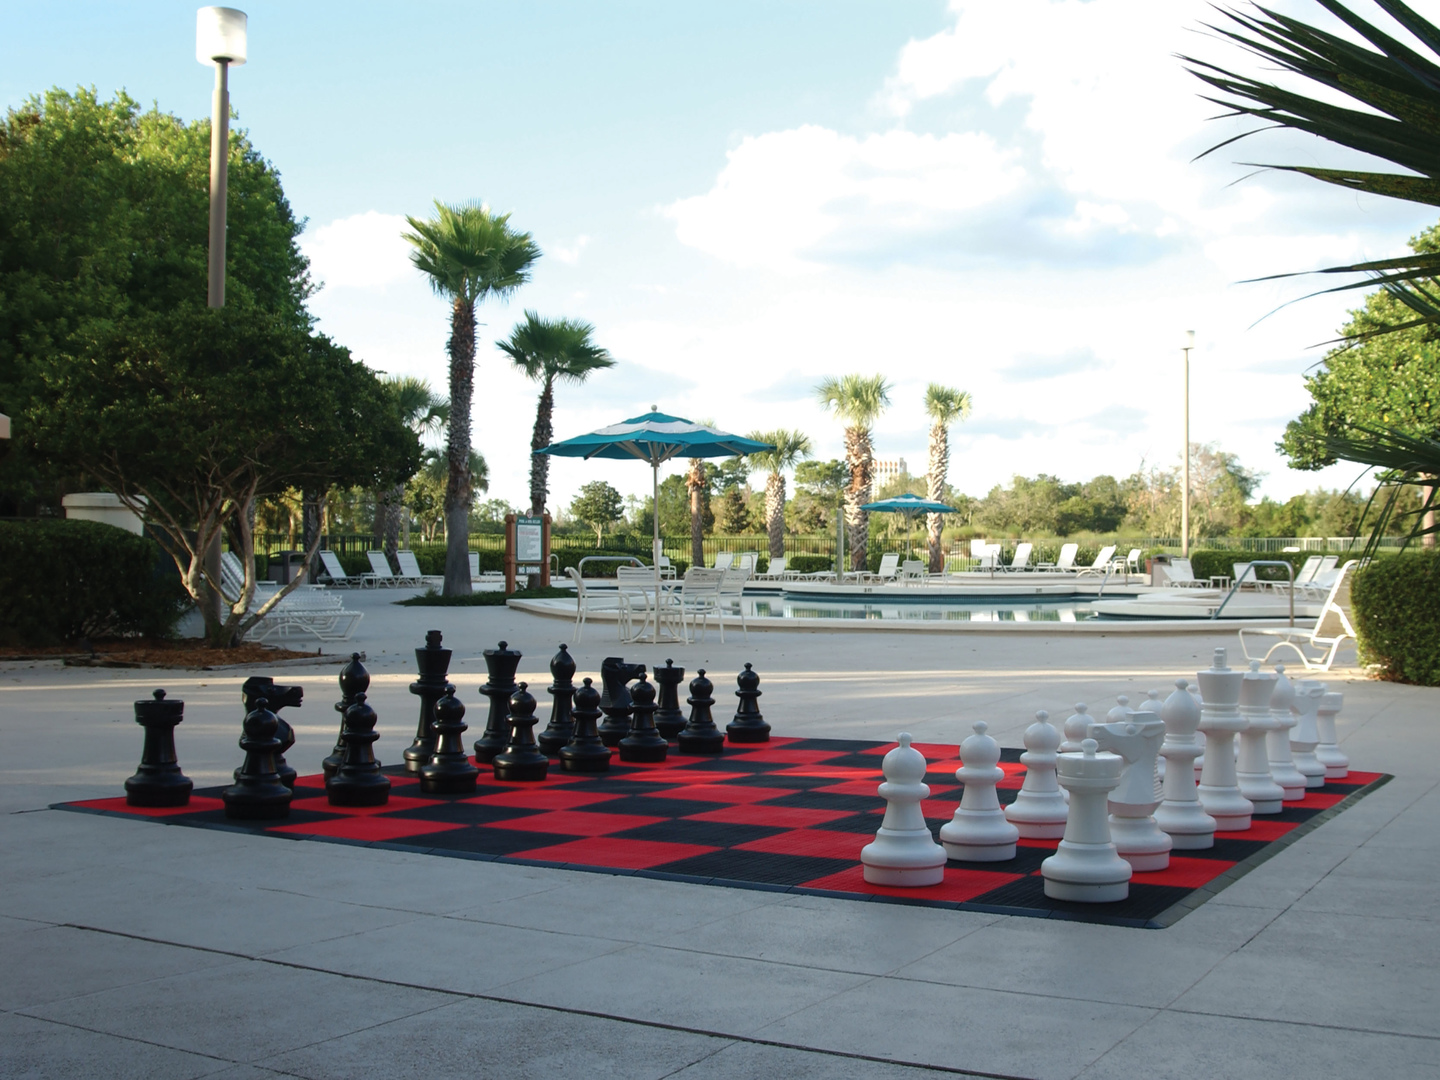 Marriott's Sabal Palms Outdoor Chess. Marriott's Sabal Palms is located in Orlando, Florida United States.